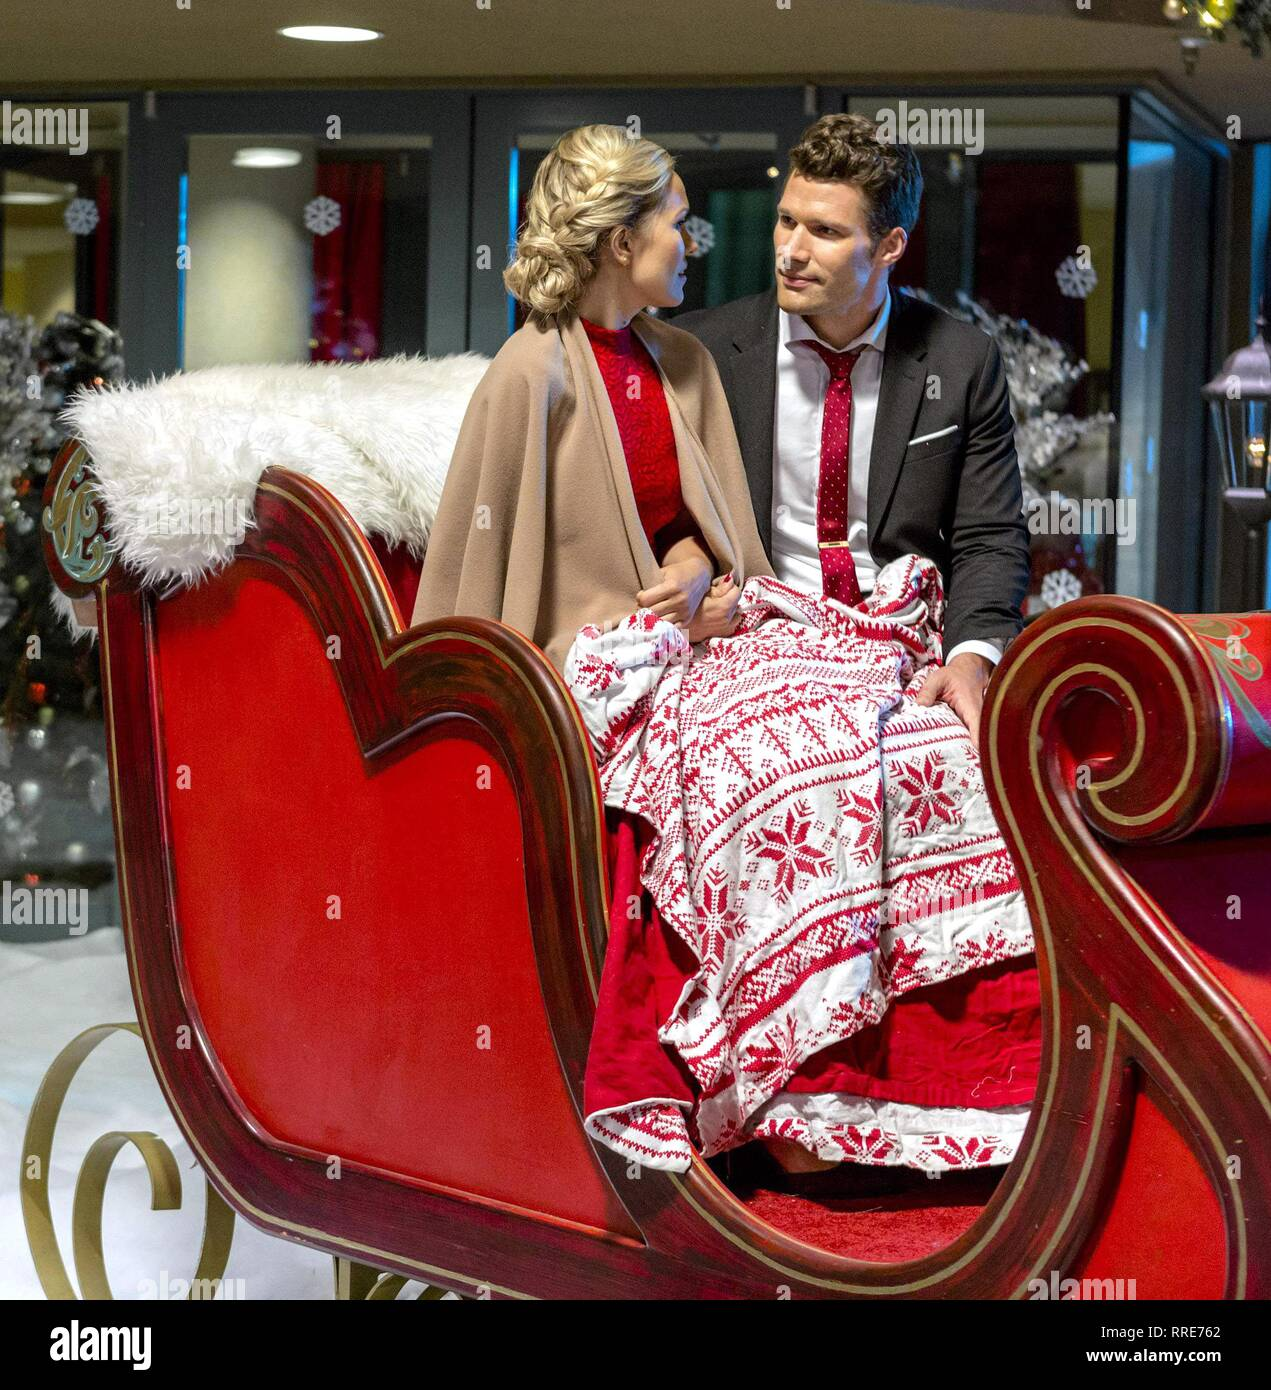 With Love Christmas.With Love Christmas Emilie Ullerup Aaron O Connell 2017